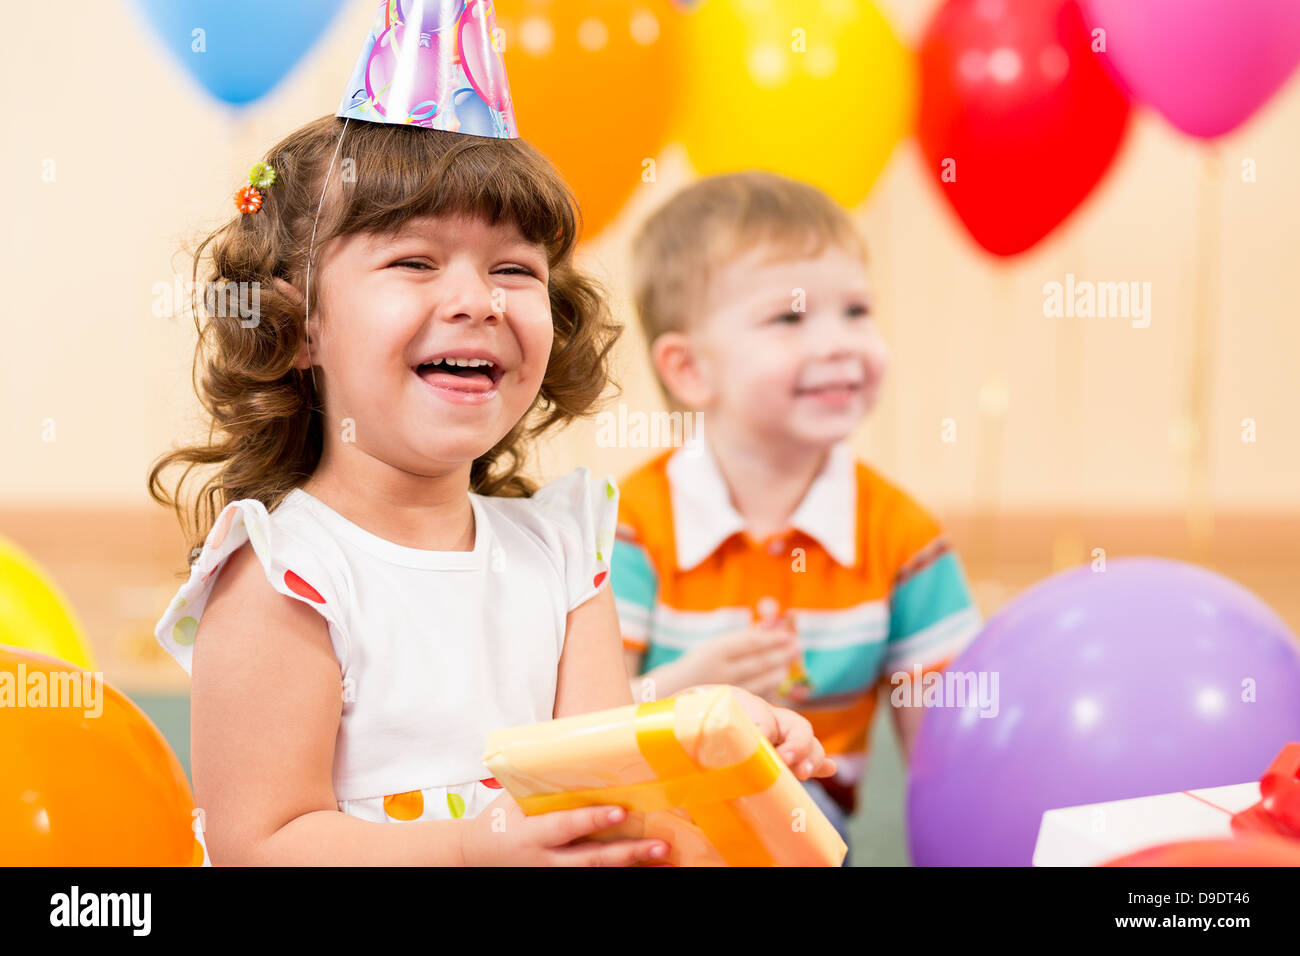 happy child girl with colorful balloons and gift - Stock Image